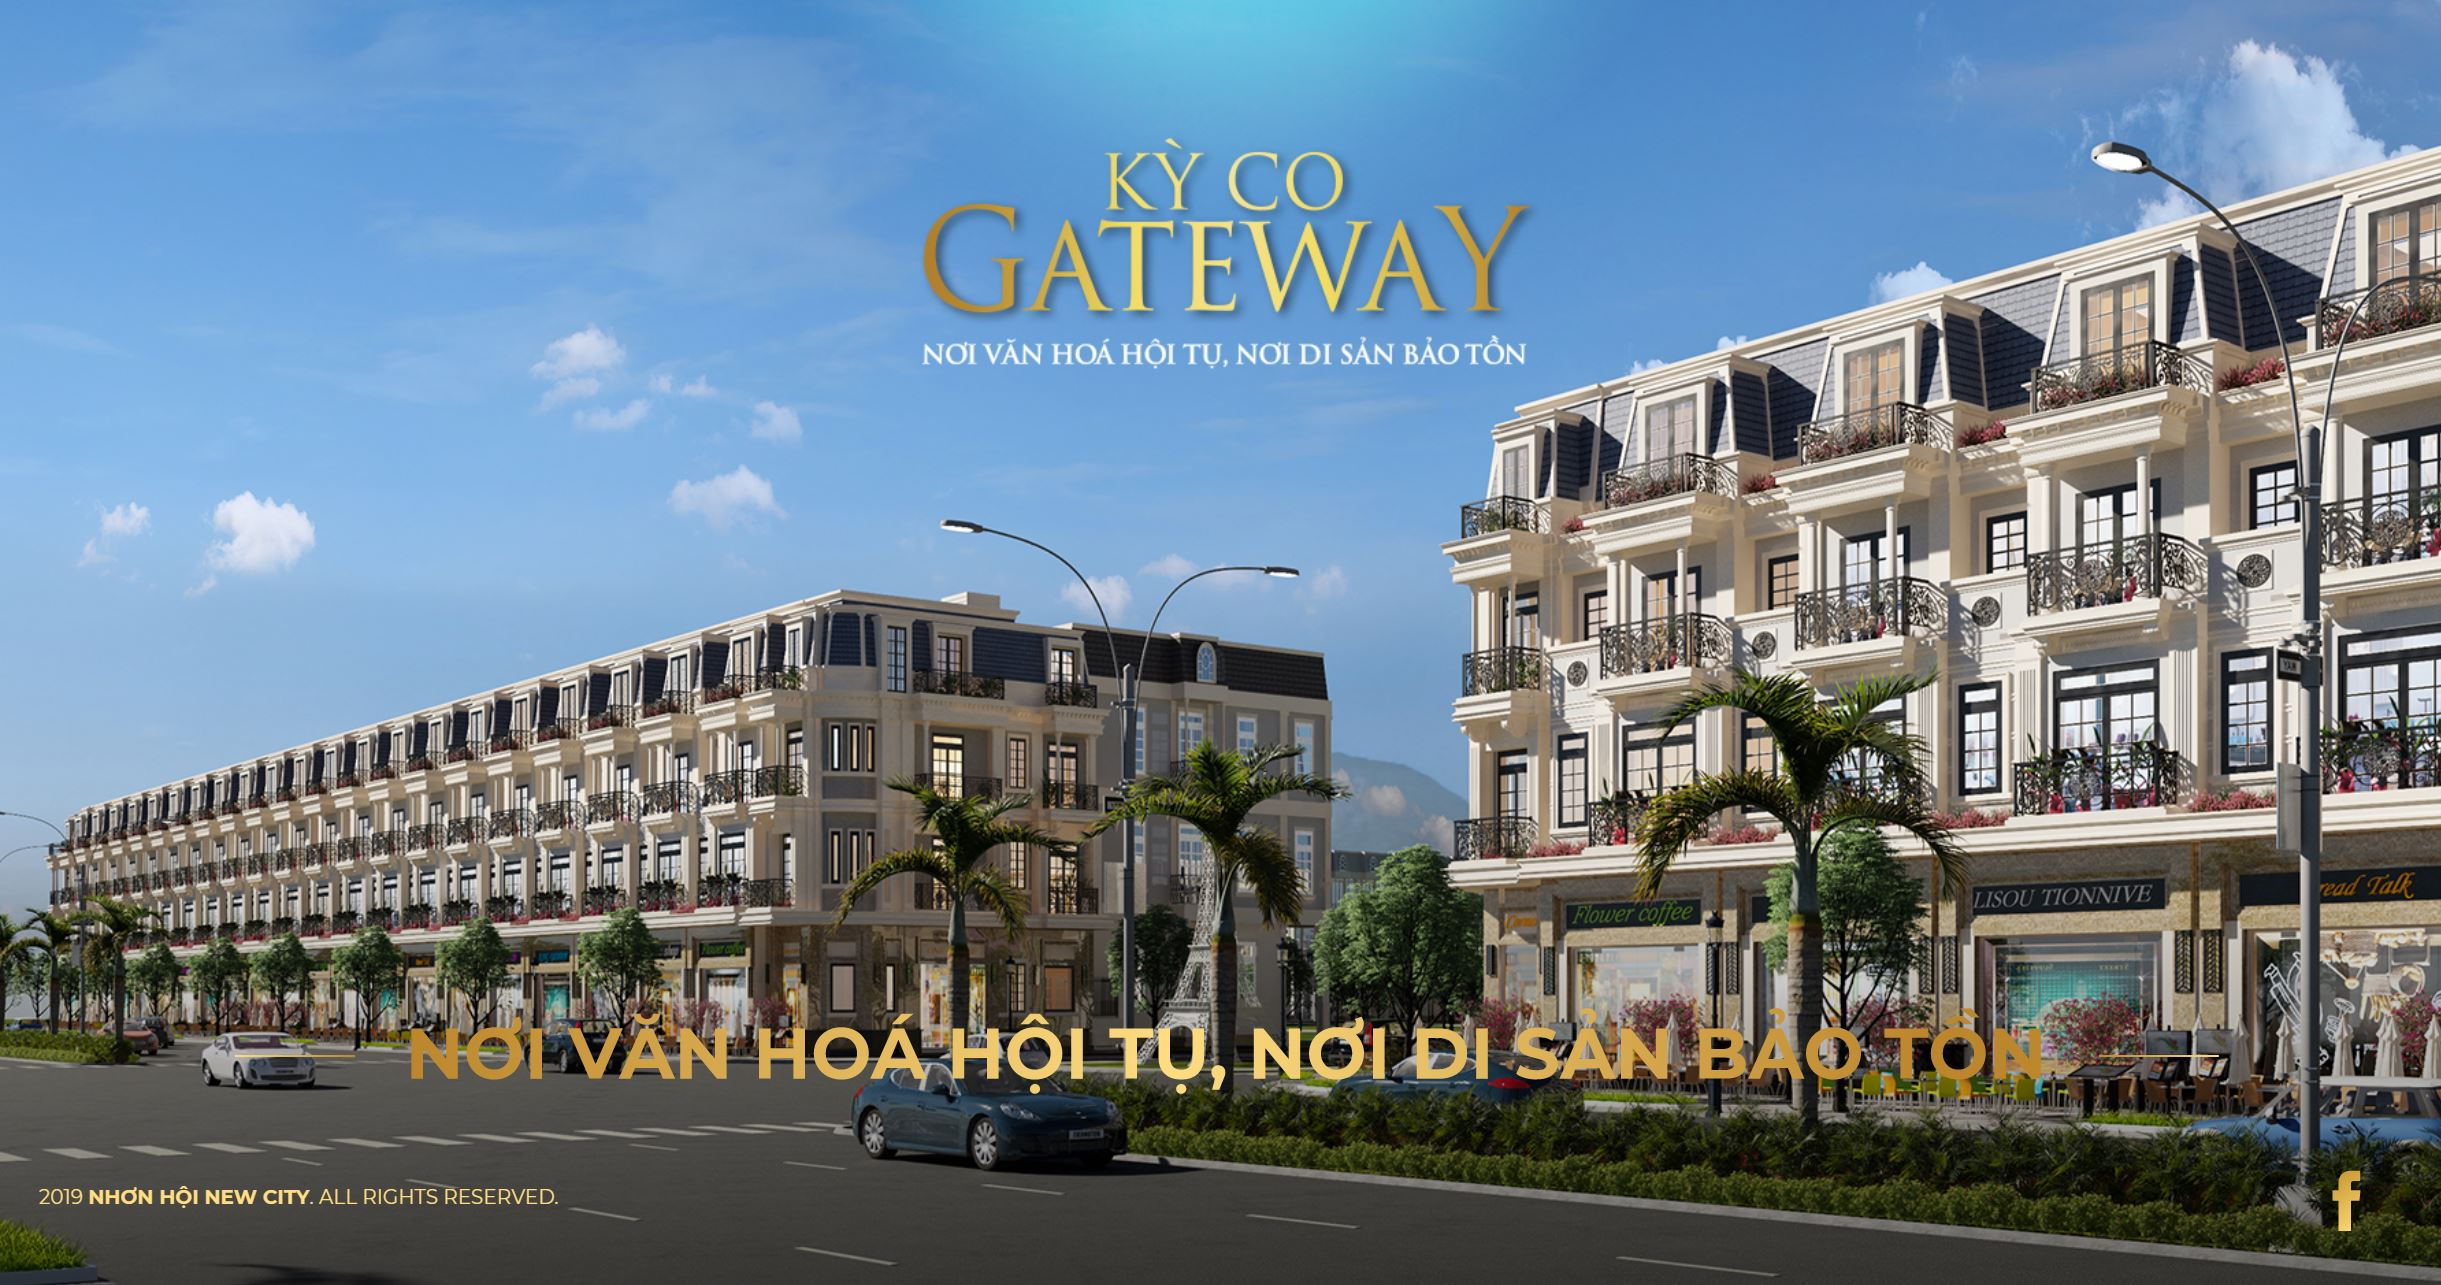 du an nhon hoi new city phan khu 9